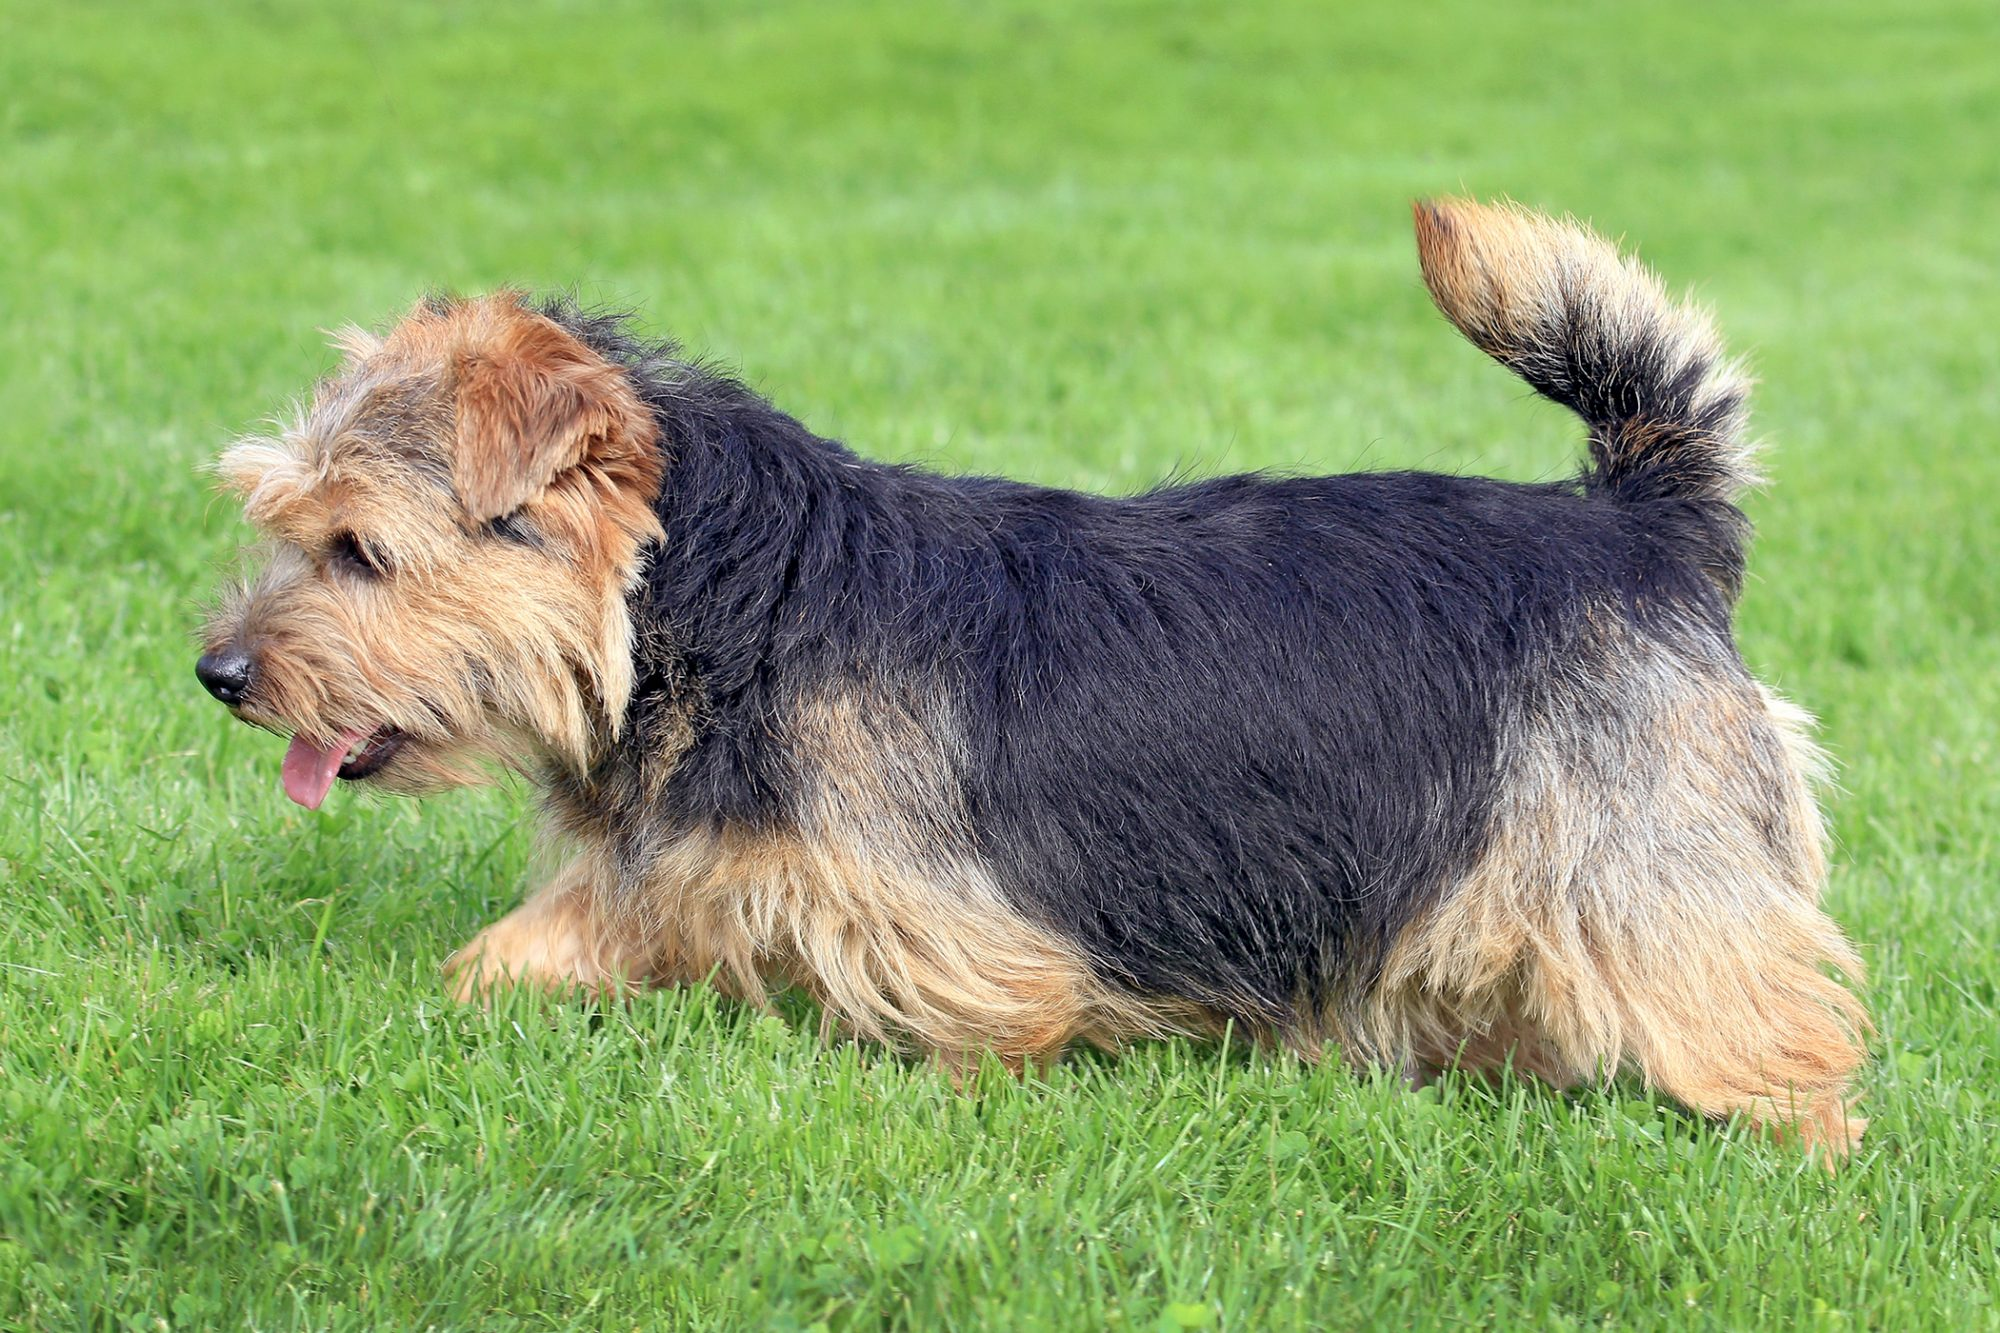 Tan and black norfolk terrier peruses the grass